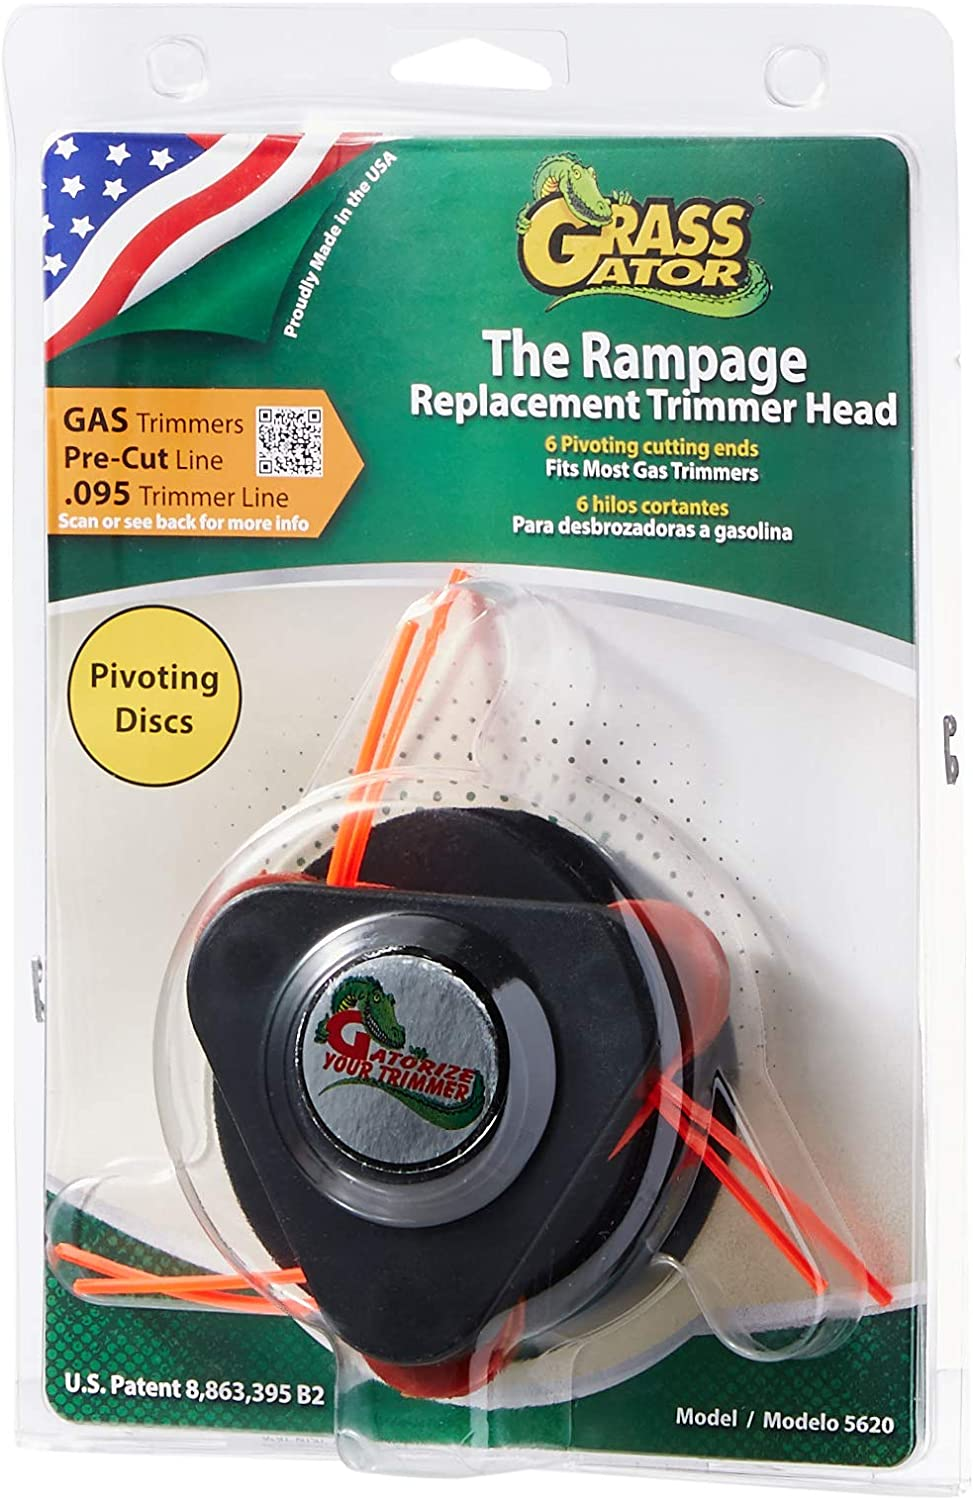 Grass Gator 5620 Rampage Replacement Trimmer Head